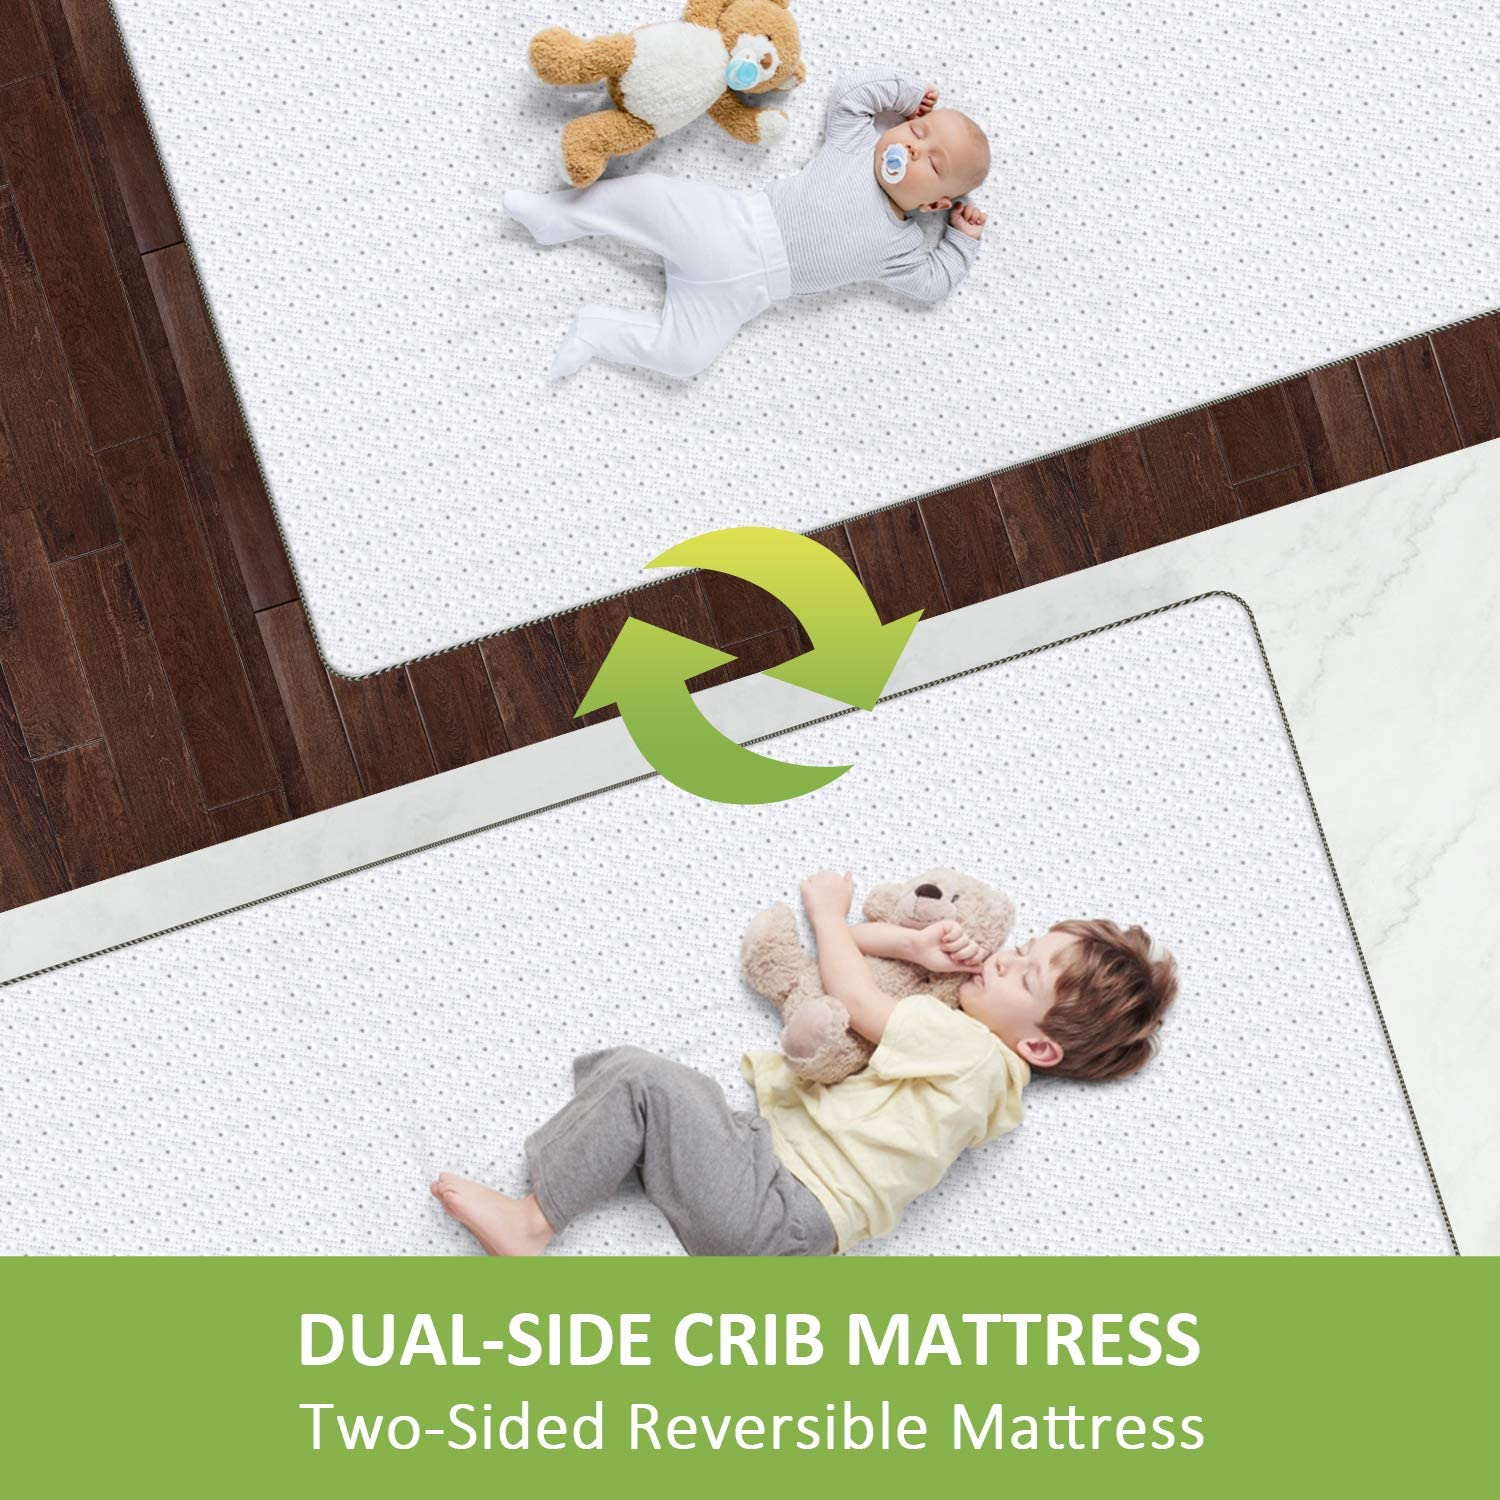 Standard Size Crib Mattress for Infant Baby and Toddler Dourxi Crib Mattress Toddler Mattress Dual Sided Comfort Memory Foam Mattress with Removable Breathable Cover and Extra Waterproof Protector